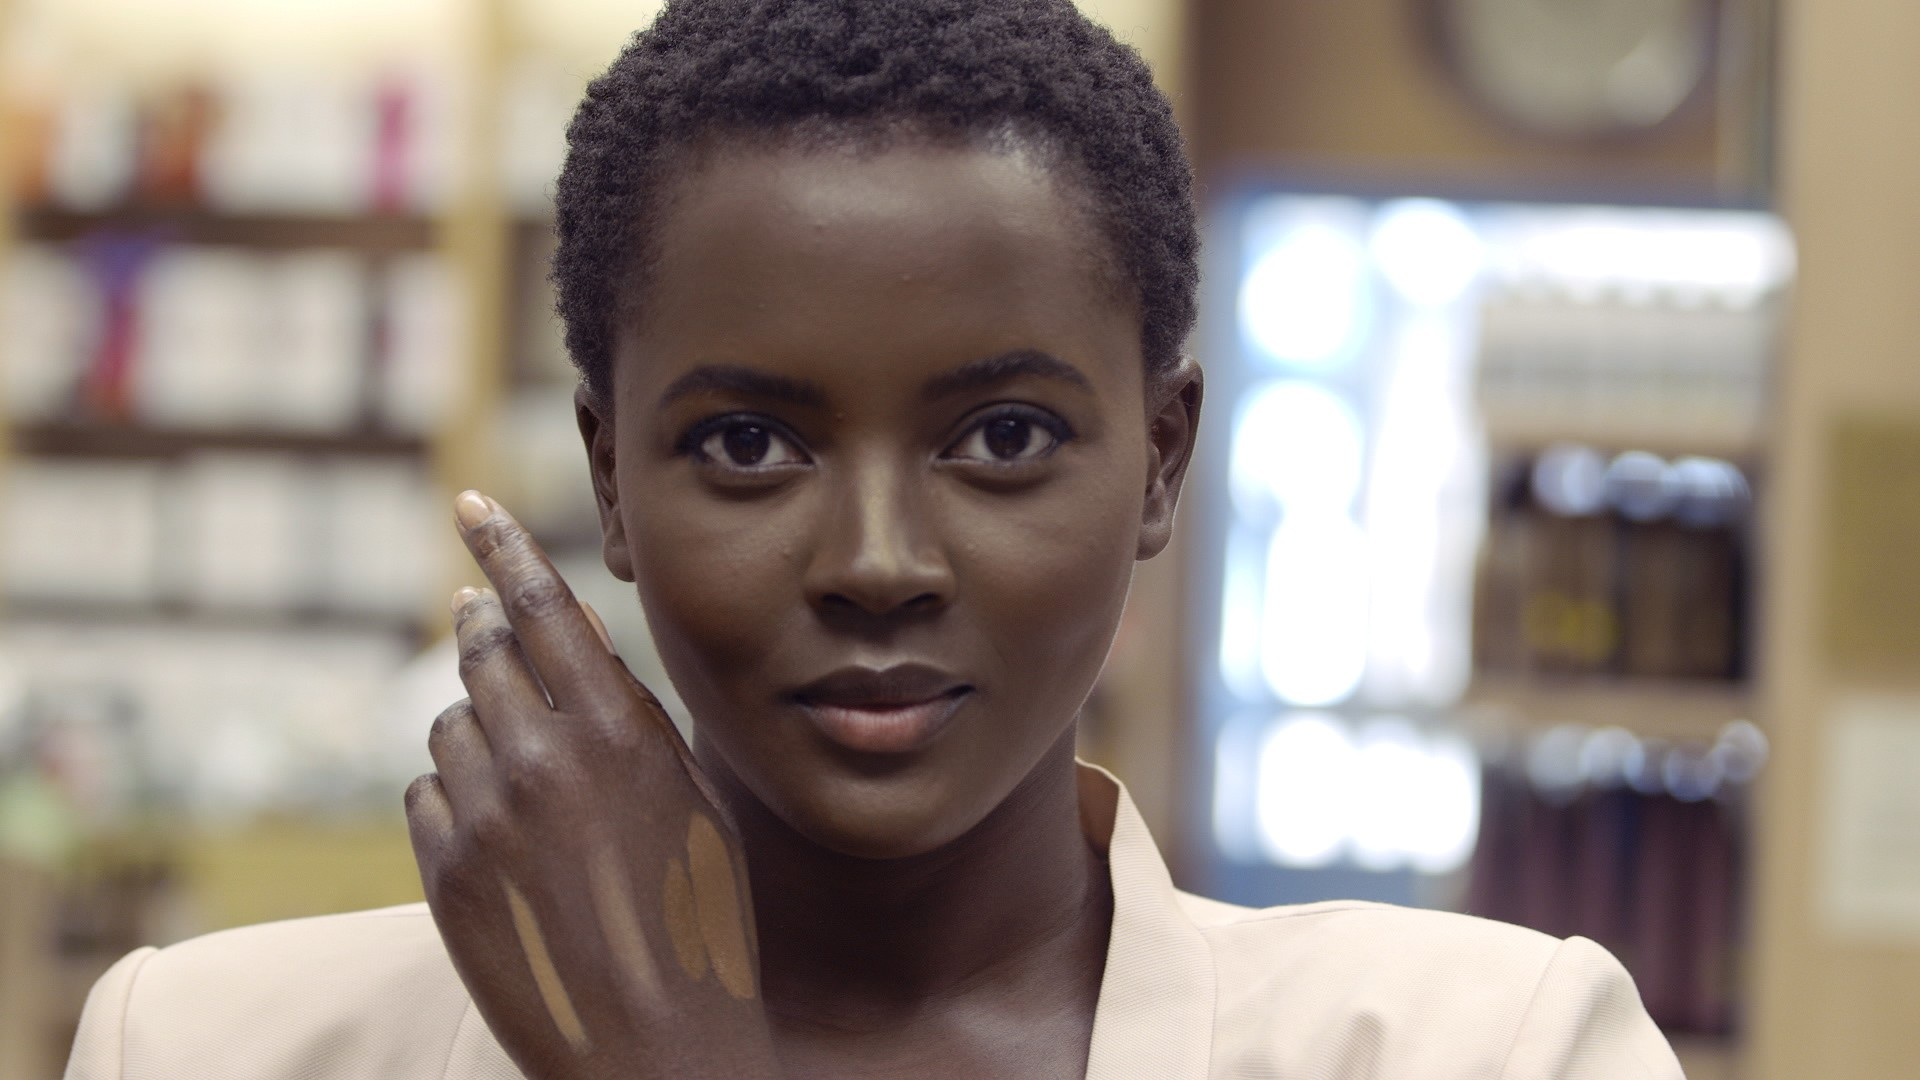 i-D meets special: philomena & iman on black beauty